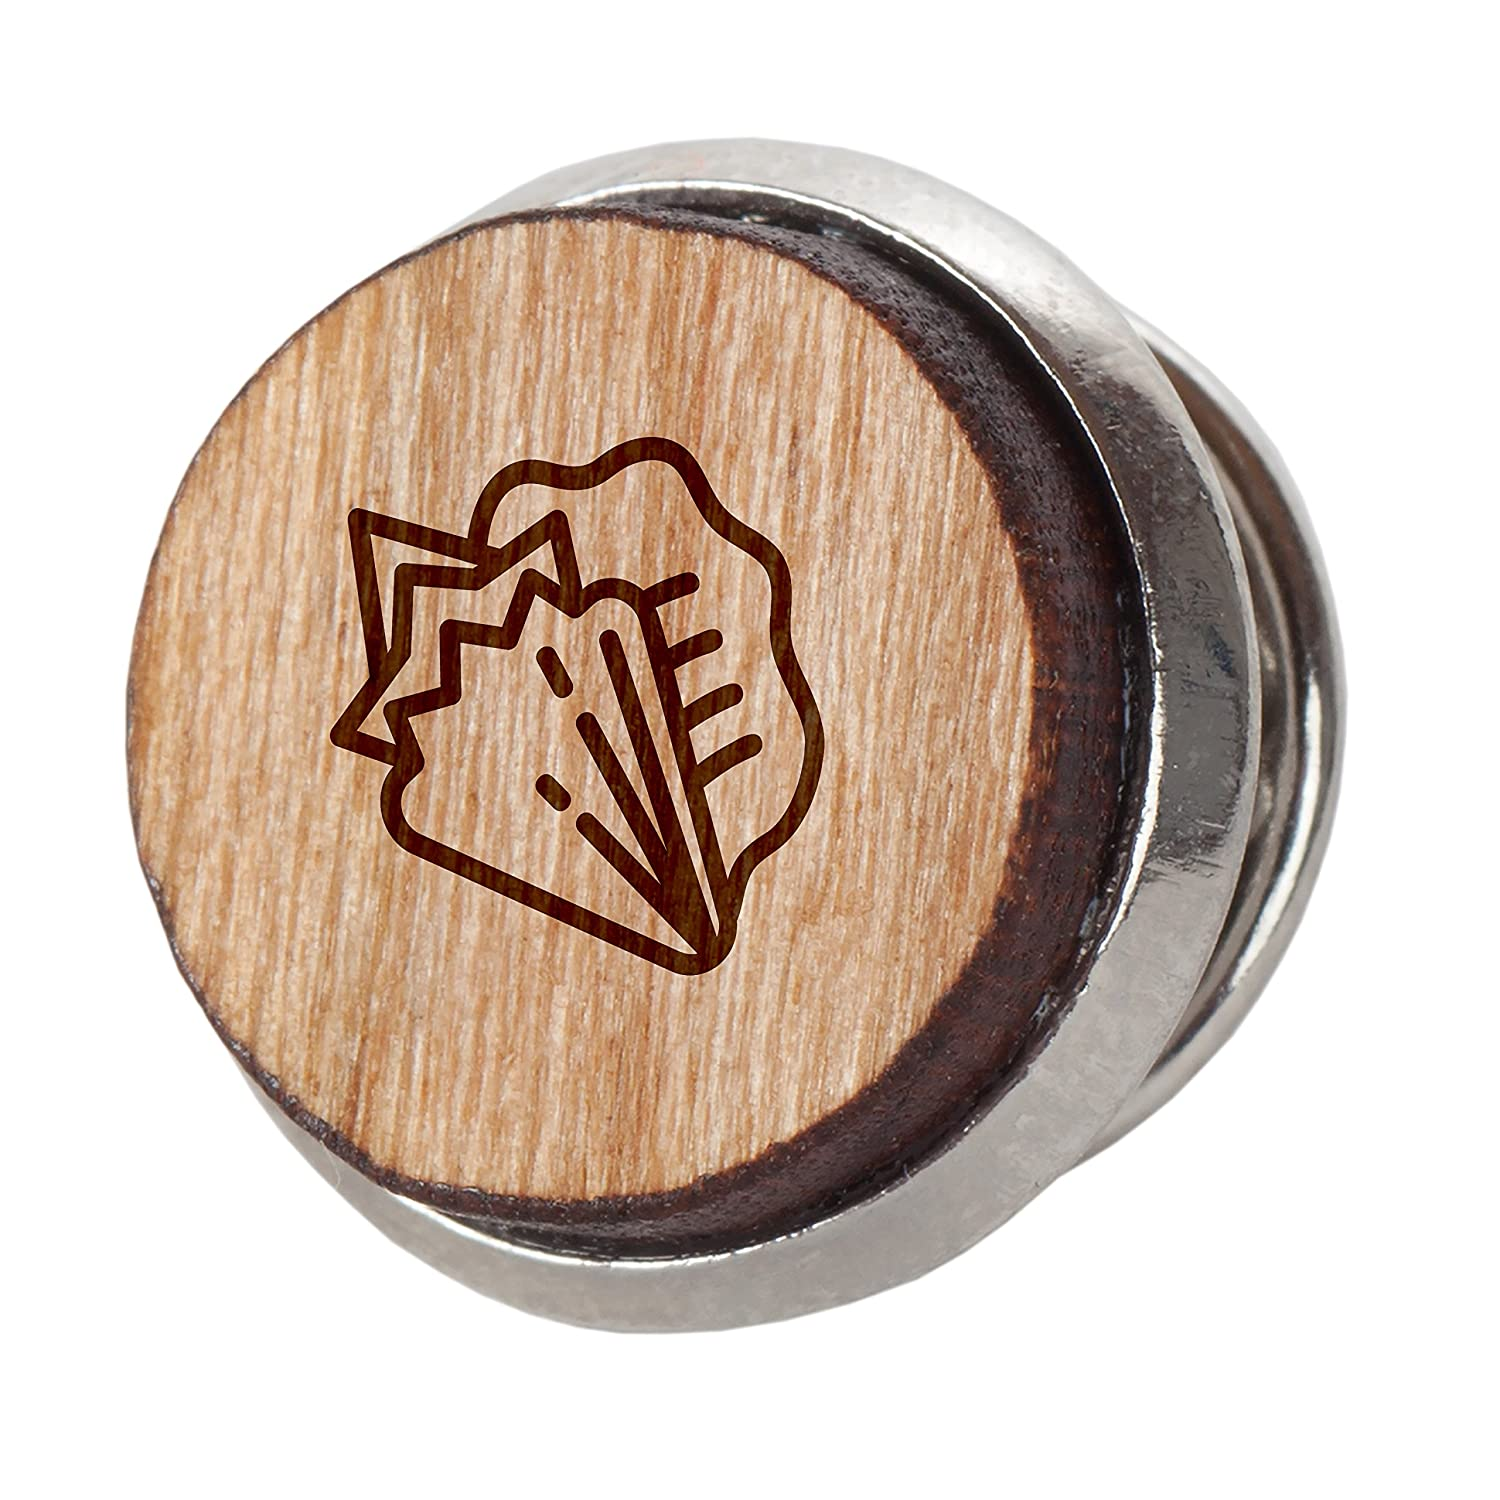 Conch Shell Fancy Stylish Cherry Wood Tie Tack 12Mm Simple Tie Clip with Laser Engraved Design Engraved Tie Tack Gift